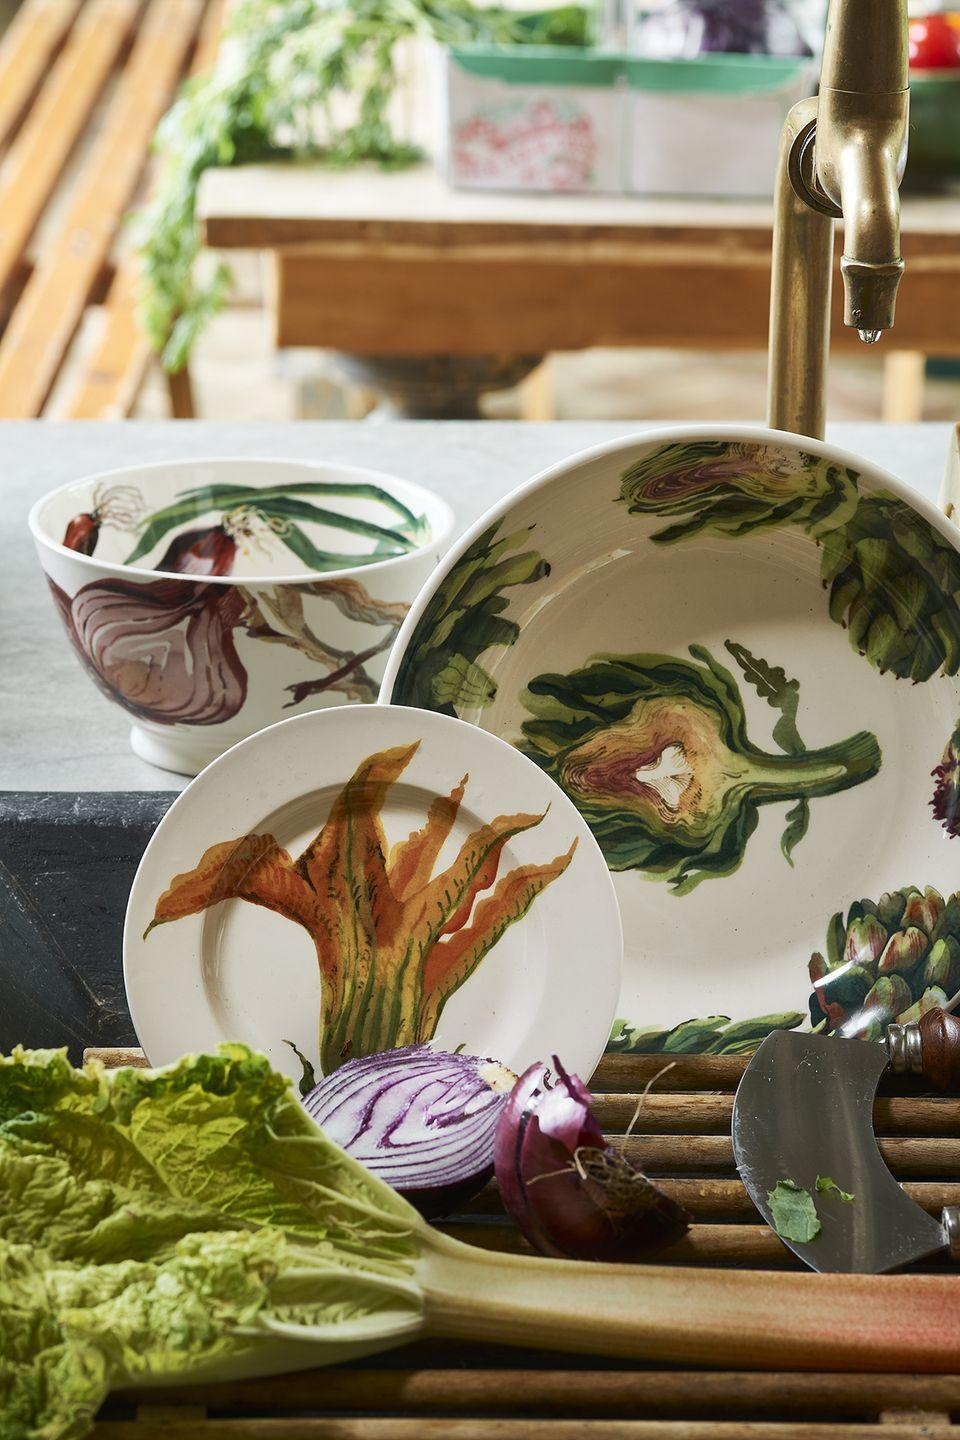 """<p>Eating one of your five a day just got easier thanks to the new range of veggie-inspired plates. Perfect to buy a gardener for their birthday.</p><p><a class=""""link rapid-noclick-resp"""" href=""""https://go.redirectingat.com?id=127X1599956&url=https%3A%2F%2Fwww.emmabridgewater.co.uk%2Fcollections%2Fvegetable-garden&sref=https%3A%2F%2Fwww.housebeautiful.com%2Fuk%2Flifestyle%2Fshopping%2Fg37527696%2Femma-bridgewater-autumn-range%2F"""" rel=""""nofollow noopener"""" target=""""_blank"""" data-ylk=""""slk:SHOP THE RANGE"""">SHOP THE RANGE</a></p><p><strong>Follow House Beautiful on <a href=""""https://www.instagram.com/housebeautifuluk/"""" rel=""""nofollow noopener"""" target=""""_blank"""" data-ylk=""""slk:Instagram"""" class=""""link rapid-noclick-resp"""">Instagram</a>.</strong></p>"""